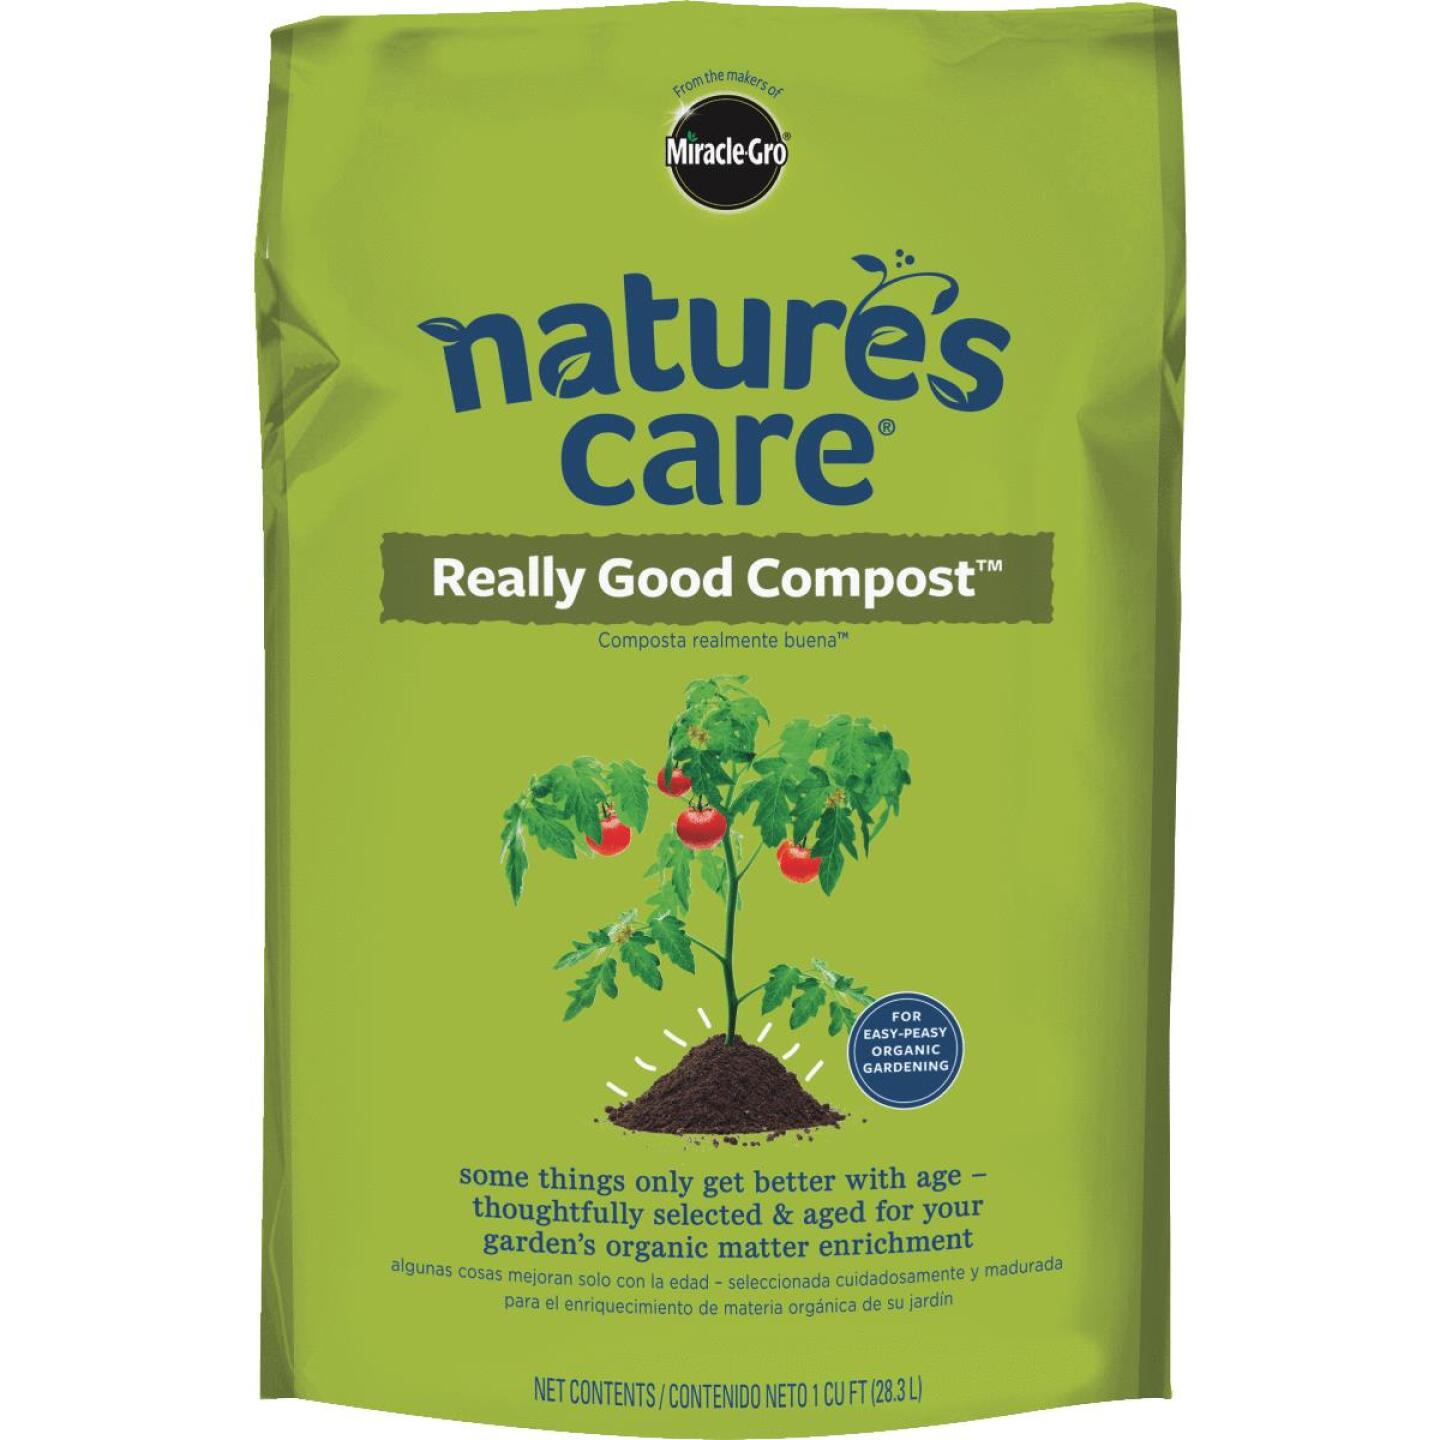 Miracle-Gro Nature's Care 1 Cu. Ft. Organic Lawn & Garden Compost Image 1